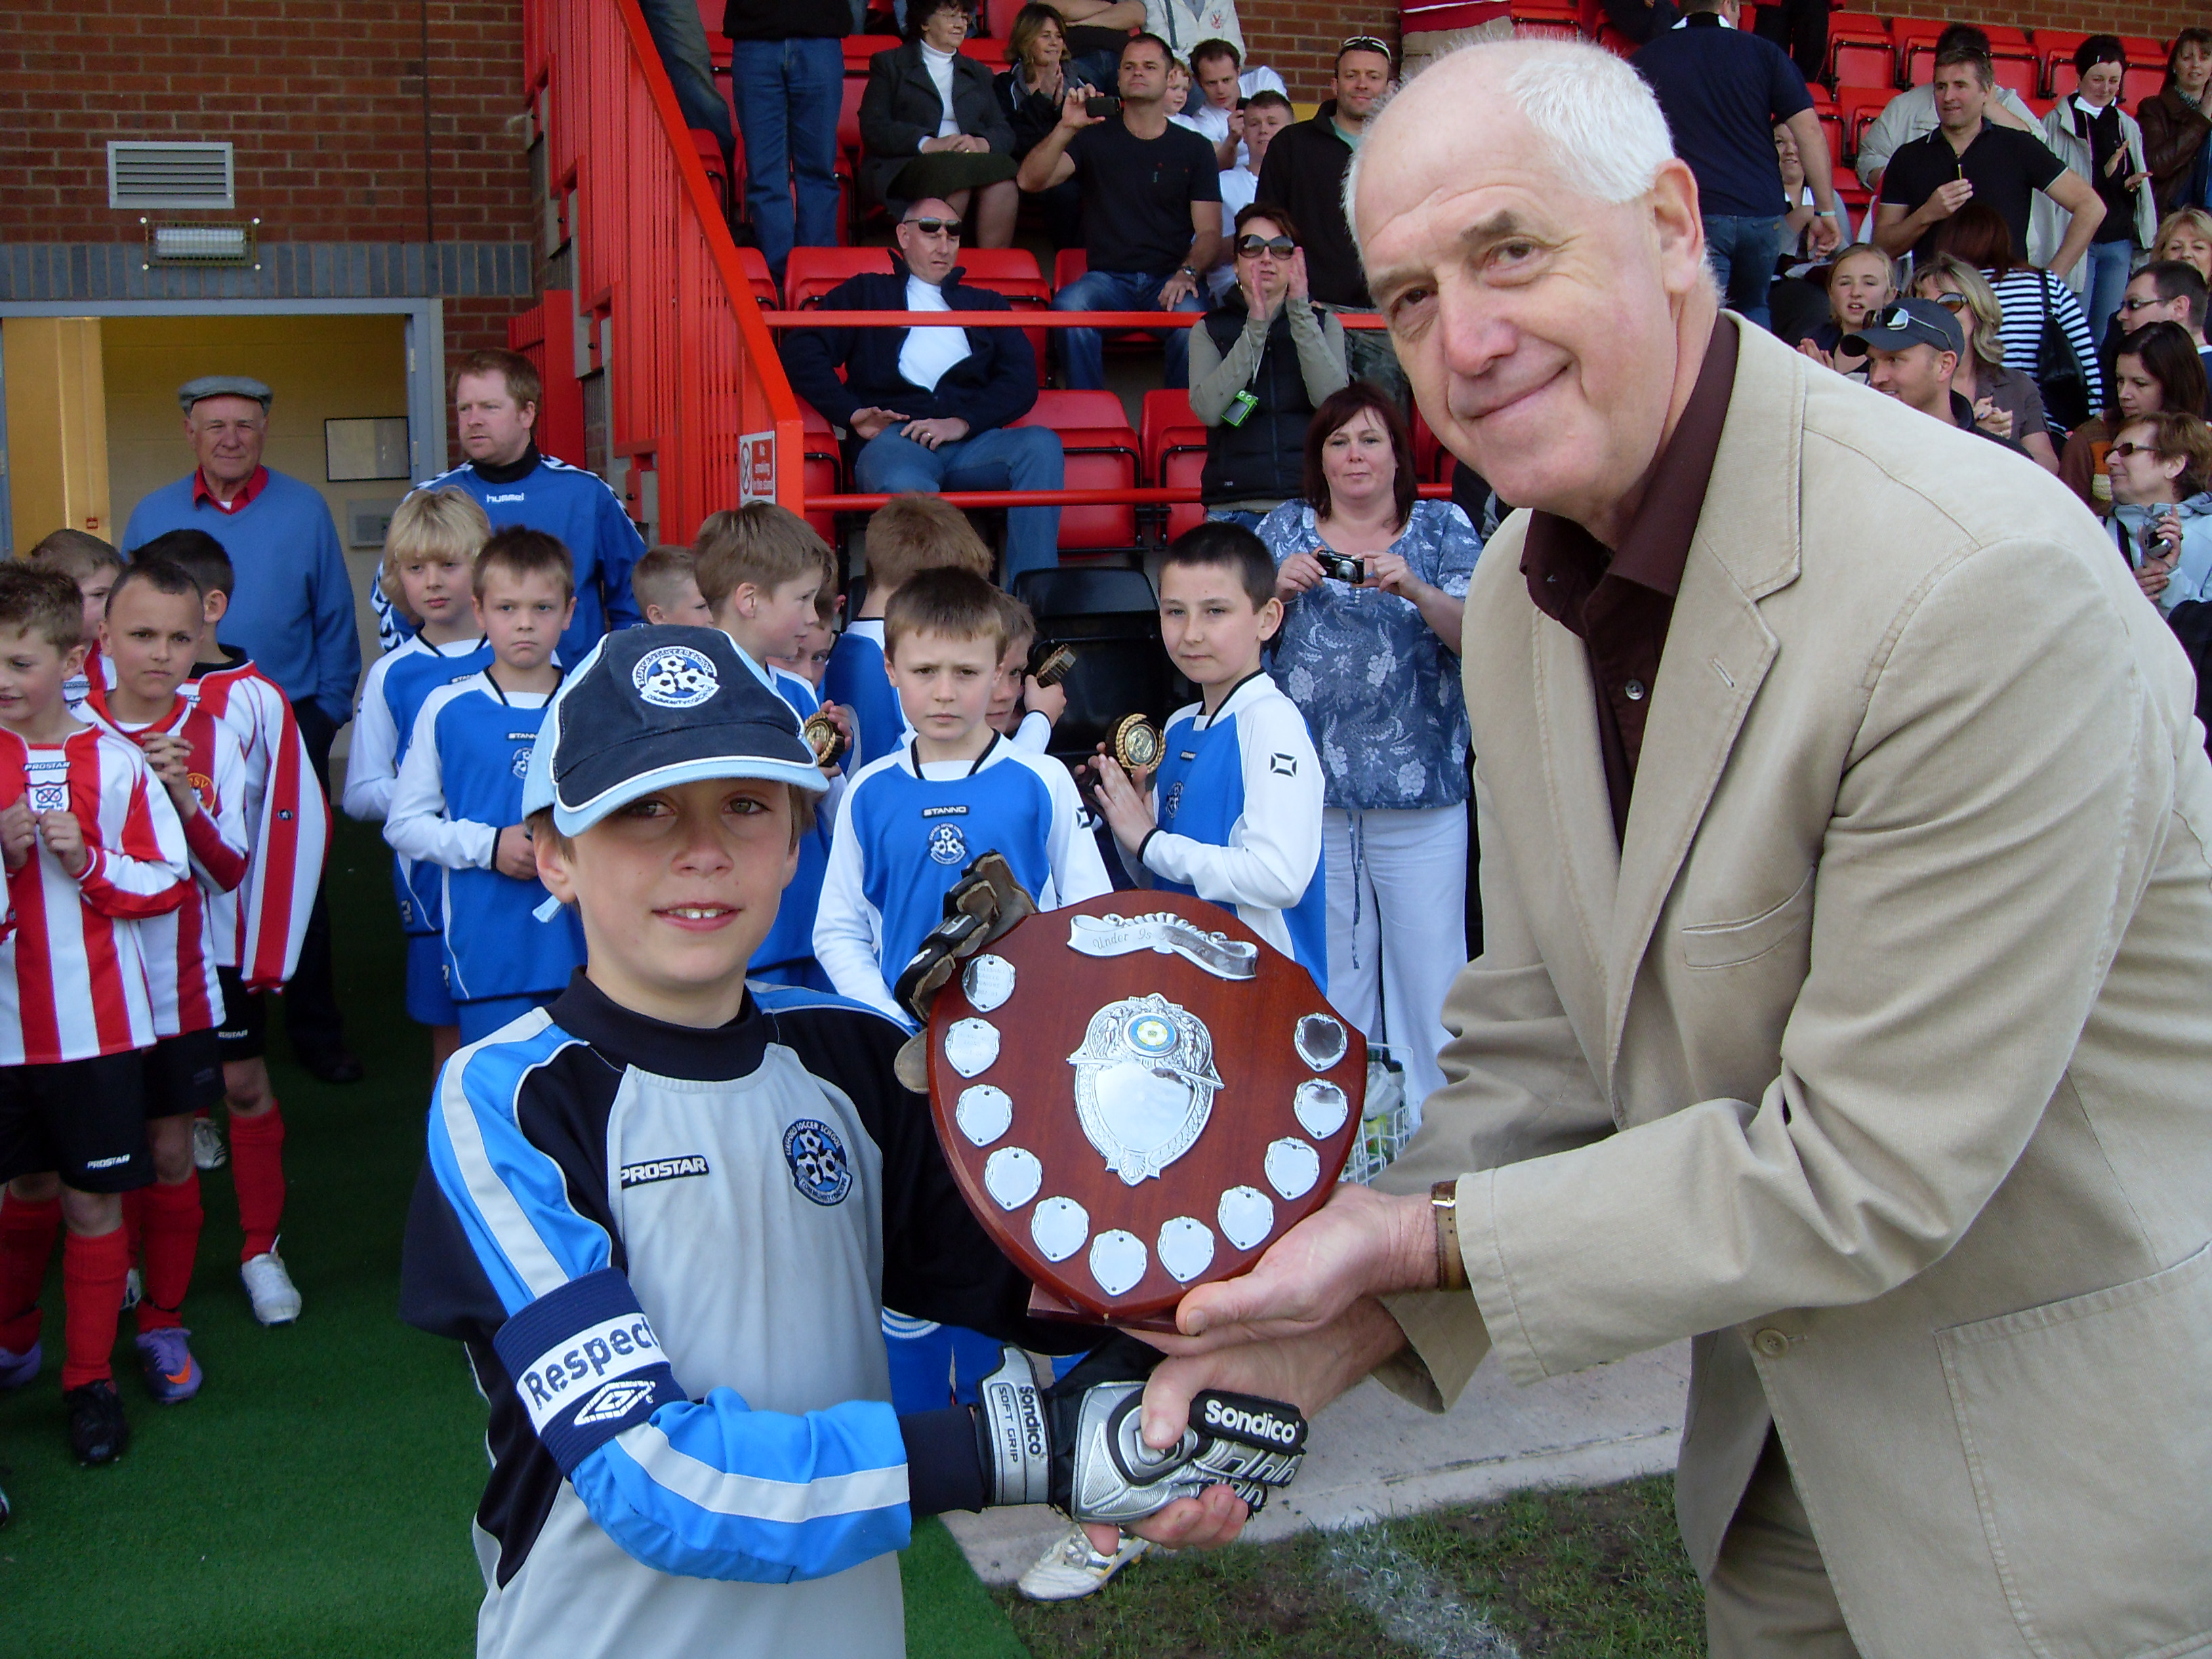 Stafford Soccer Sch Captain under 9s runners up shield